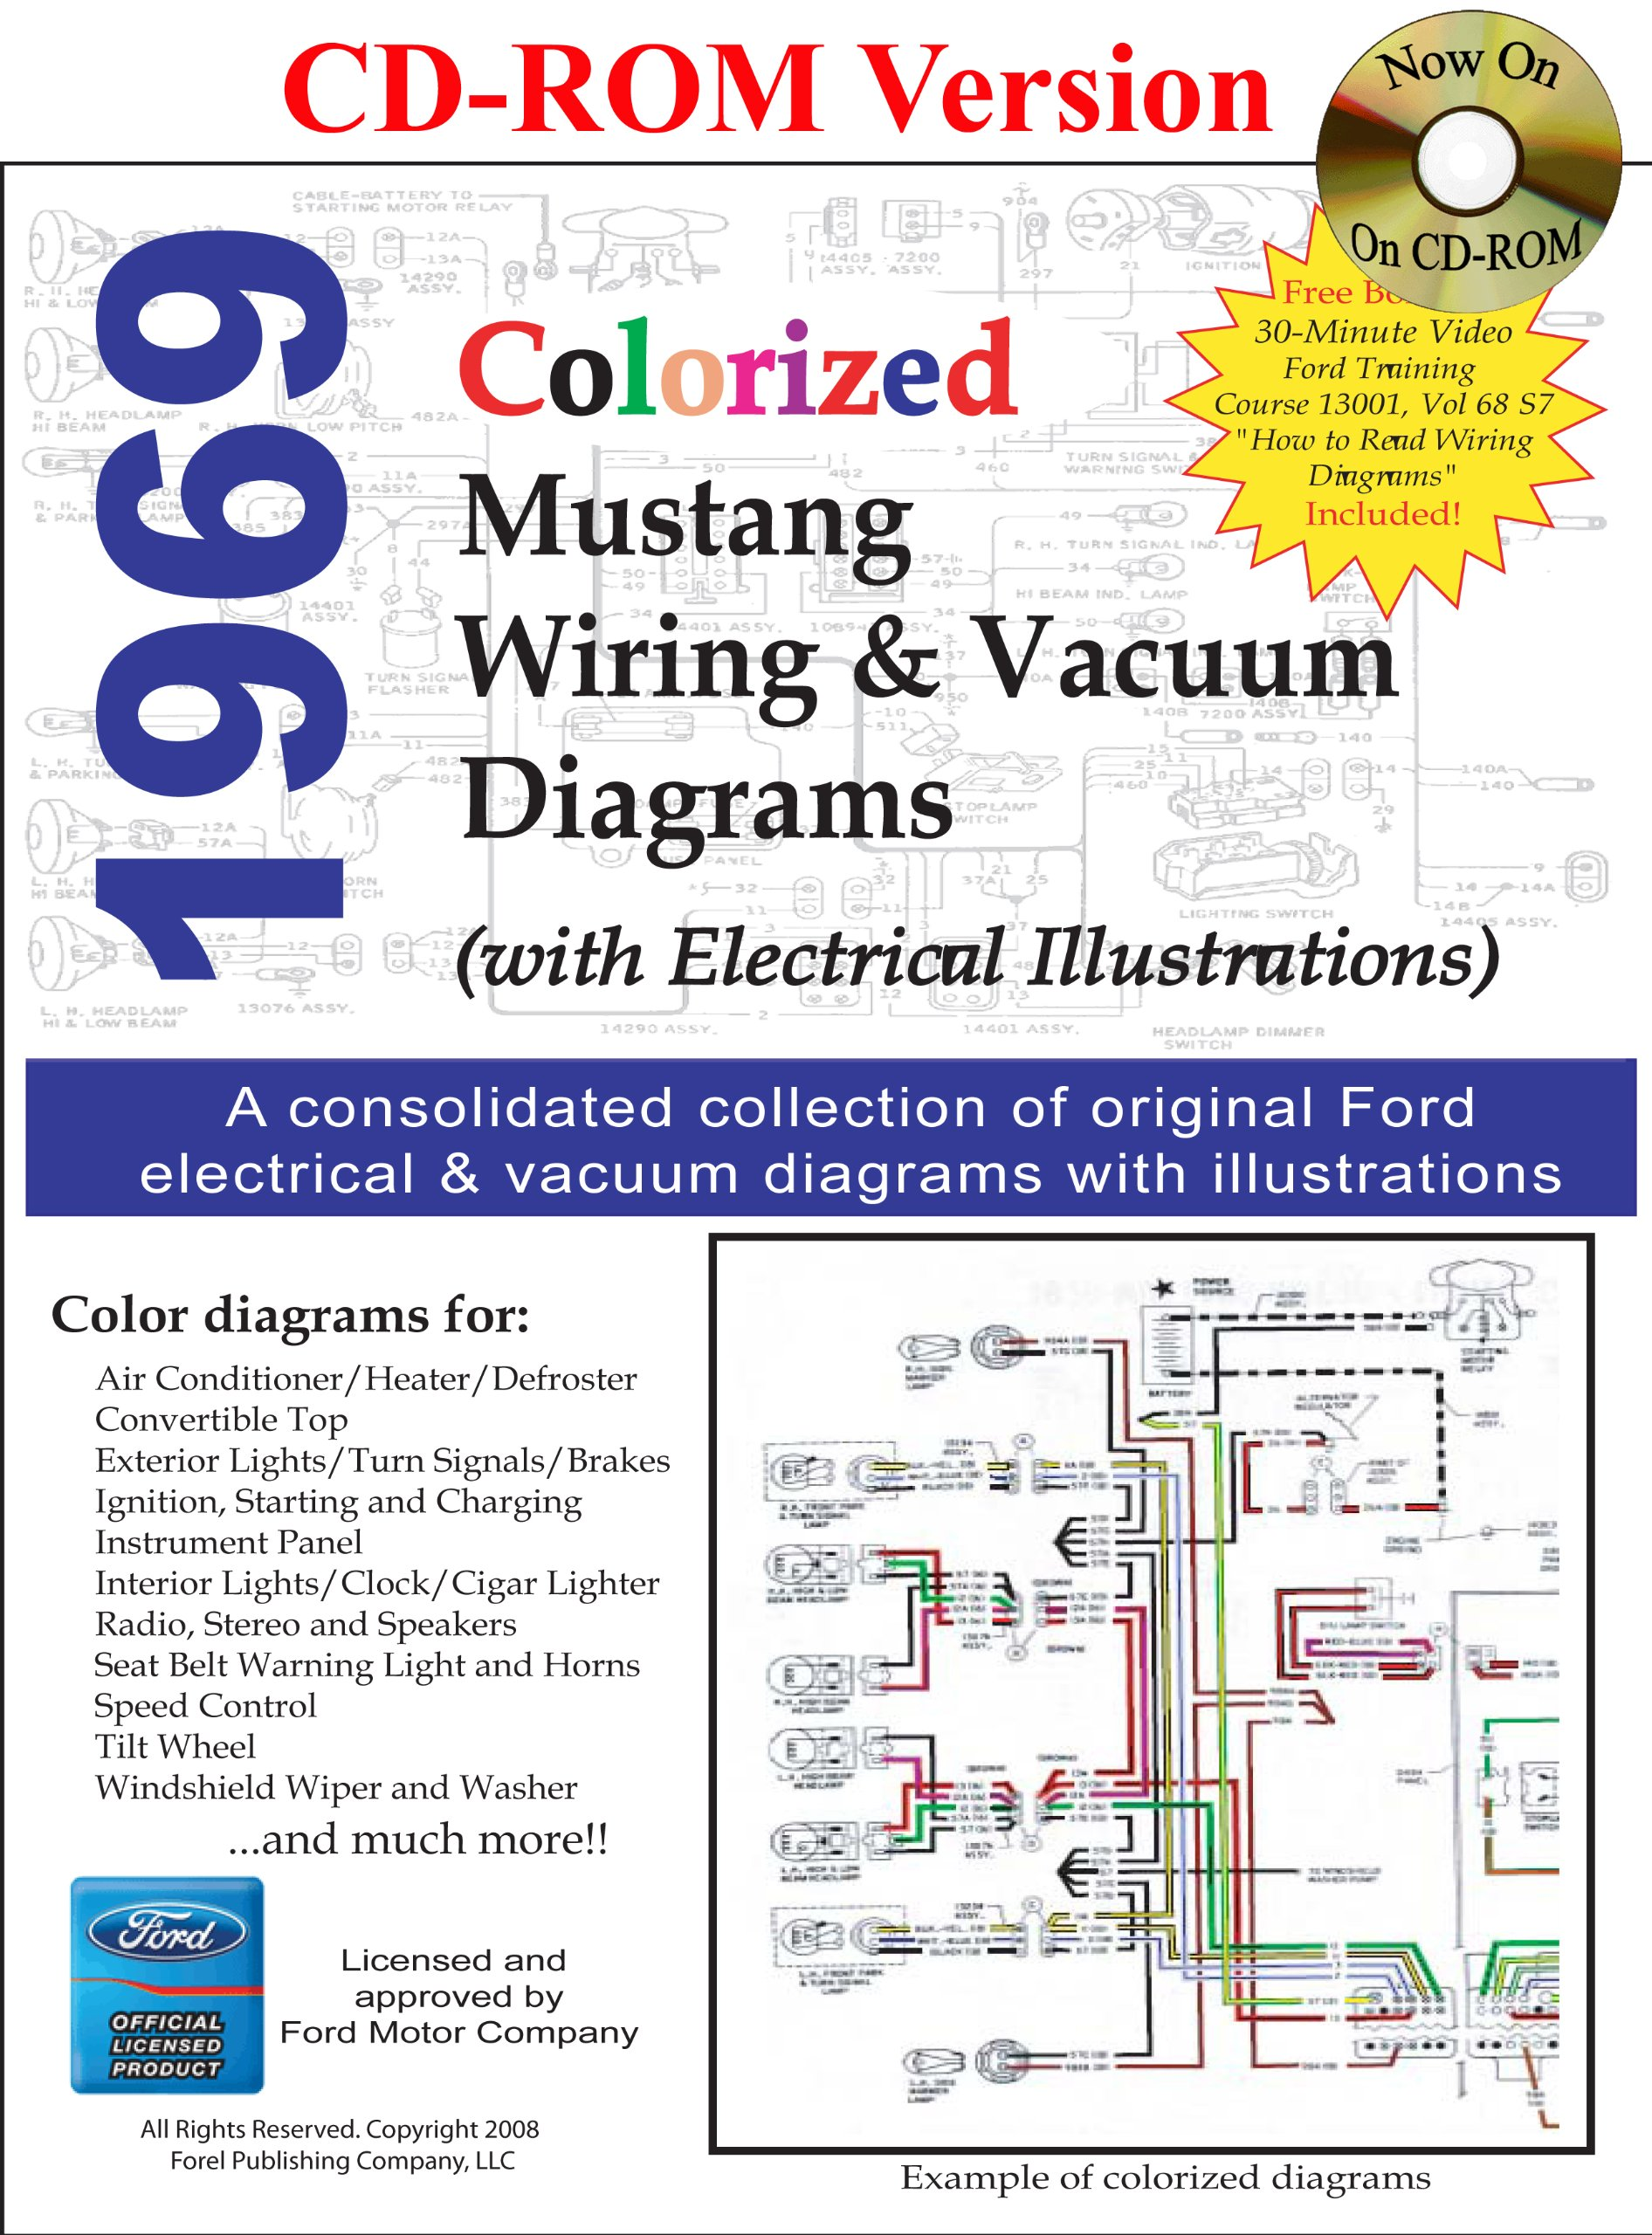 1969 Colorized Mustang Wiring & Vacuum Diagrams: David E. LeBlanc:  9781603710282: Amazon.com: Books